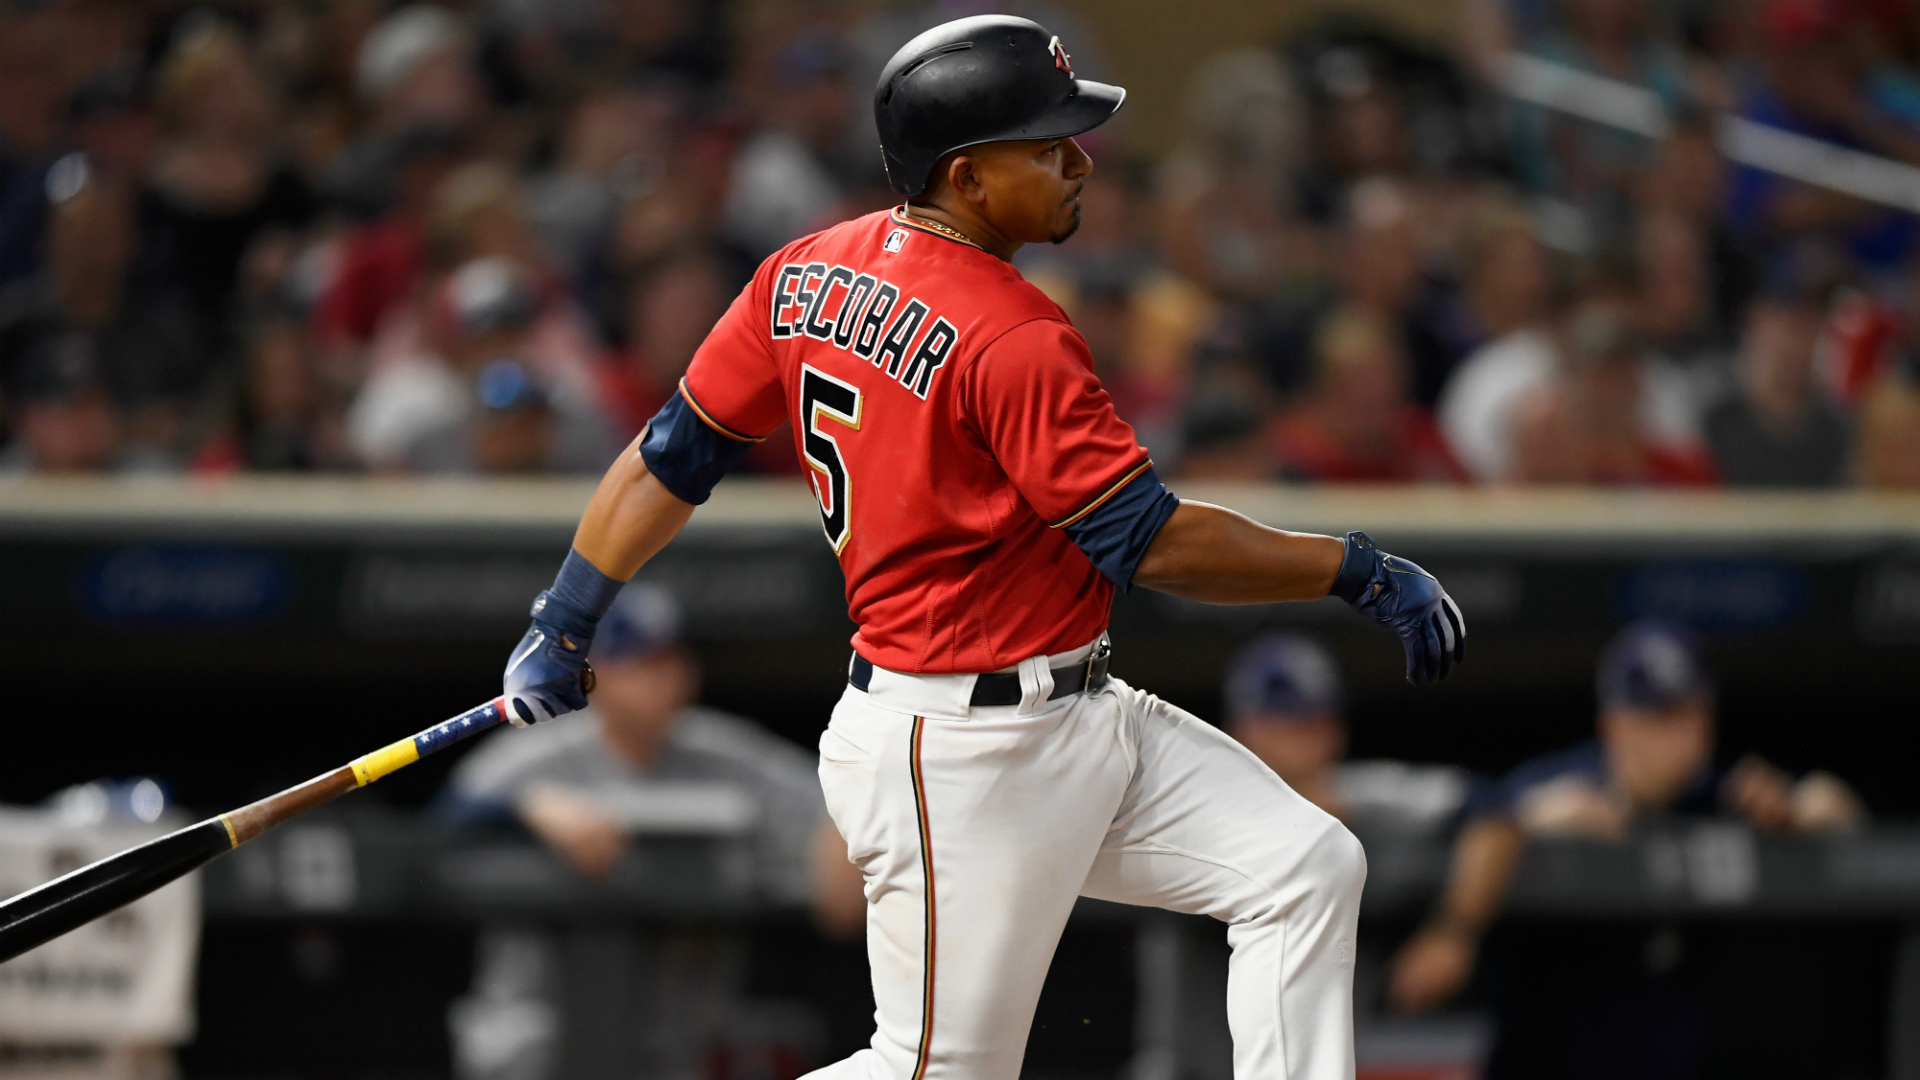 b298c3d3d67 MLB trade news: D-Backs on brink of getting Escobar | Sporting News